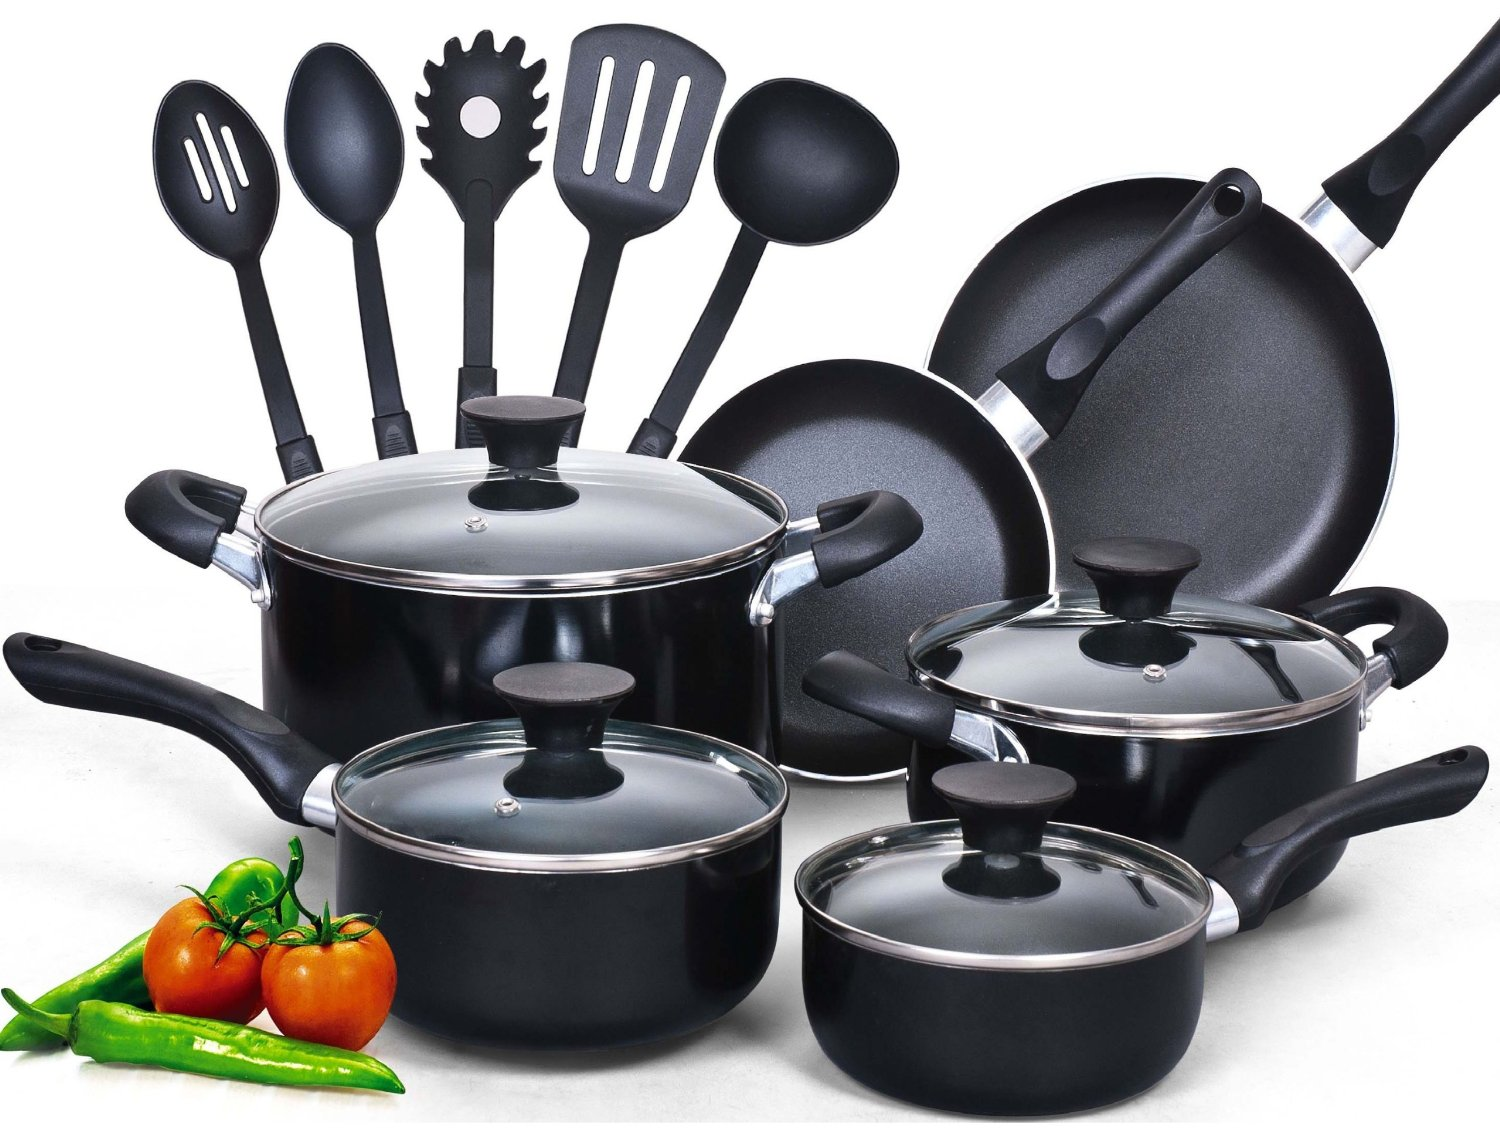 Soft handle Cookware Set